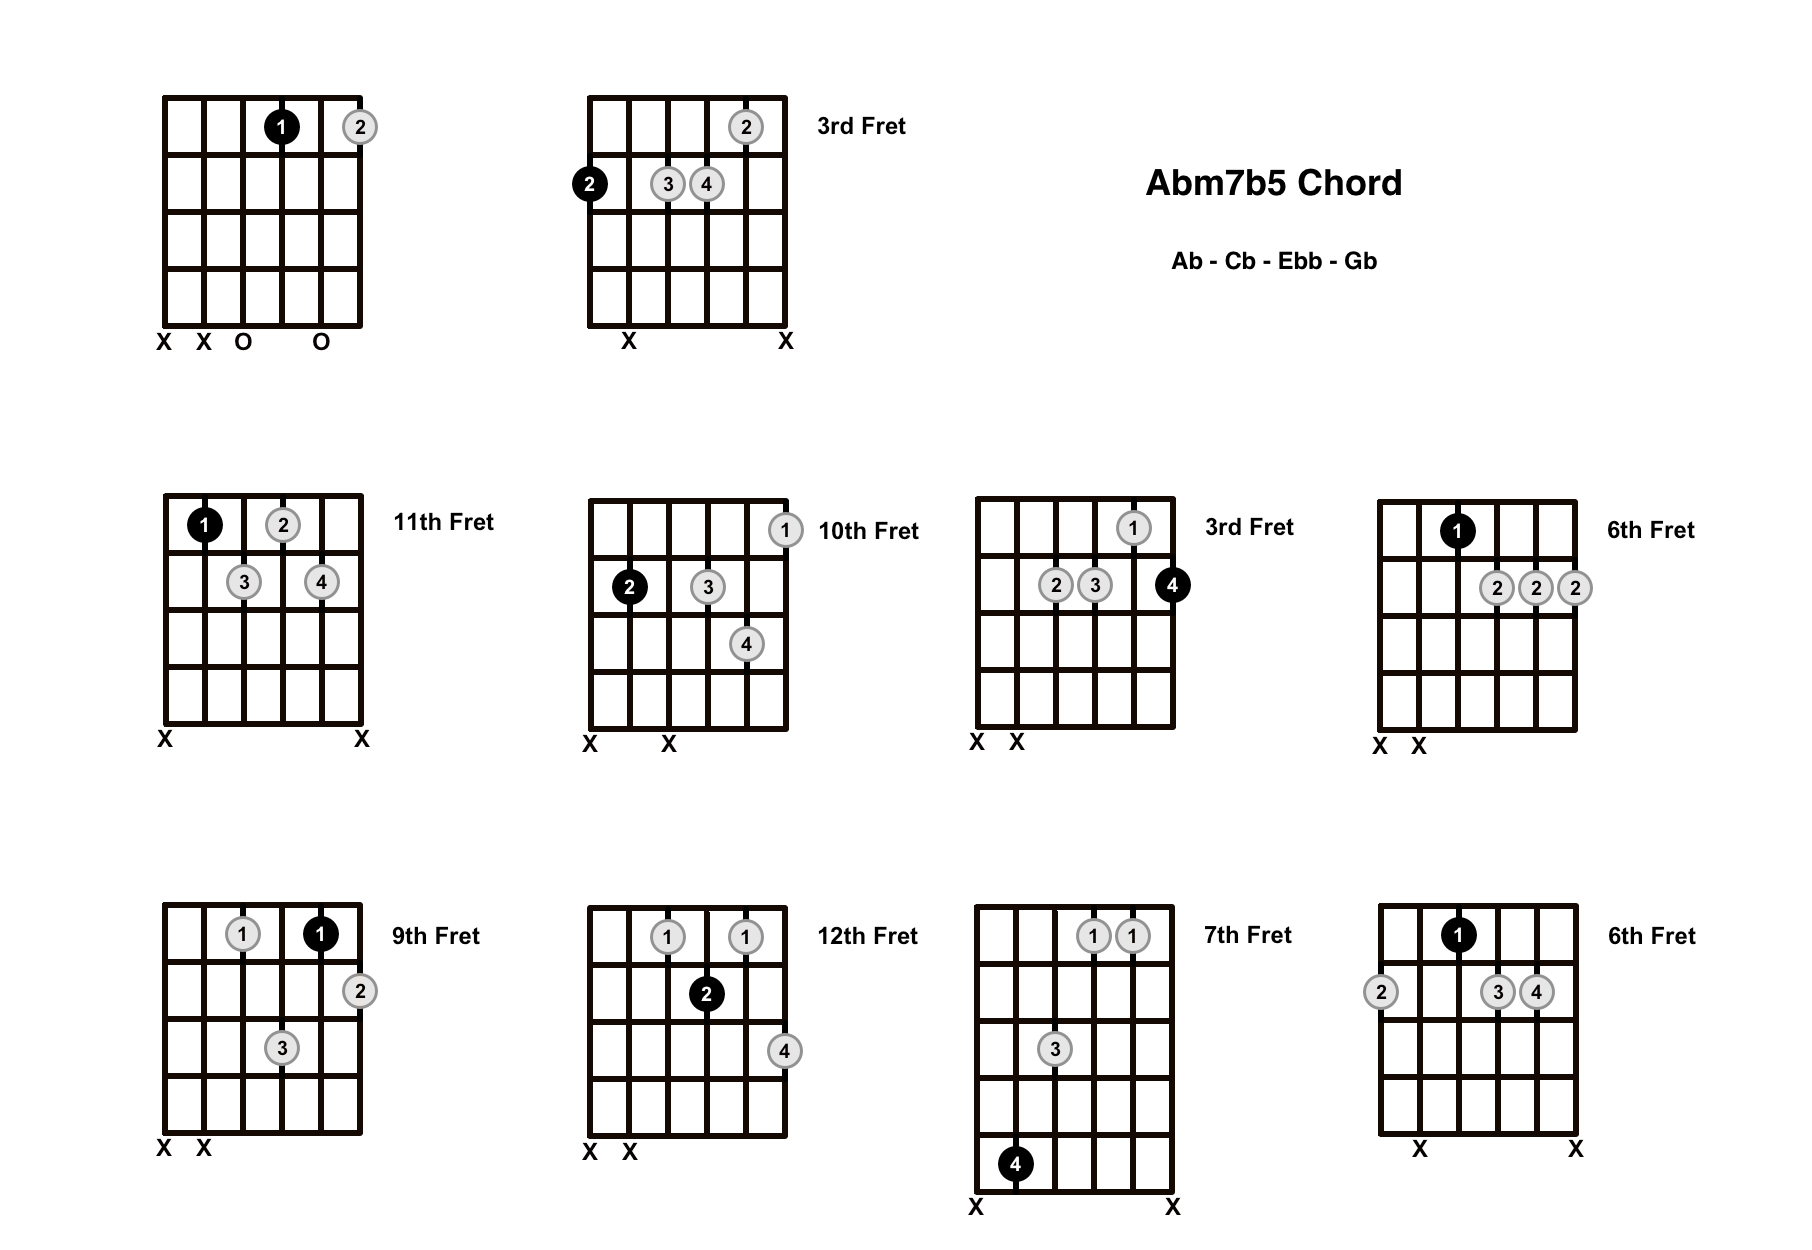 Abm7b5 Chord On The Guitar (A Flat Minor 7 Flat 5, A Flat Half Diminished) – Diagrams, Finger Positions and Theory